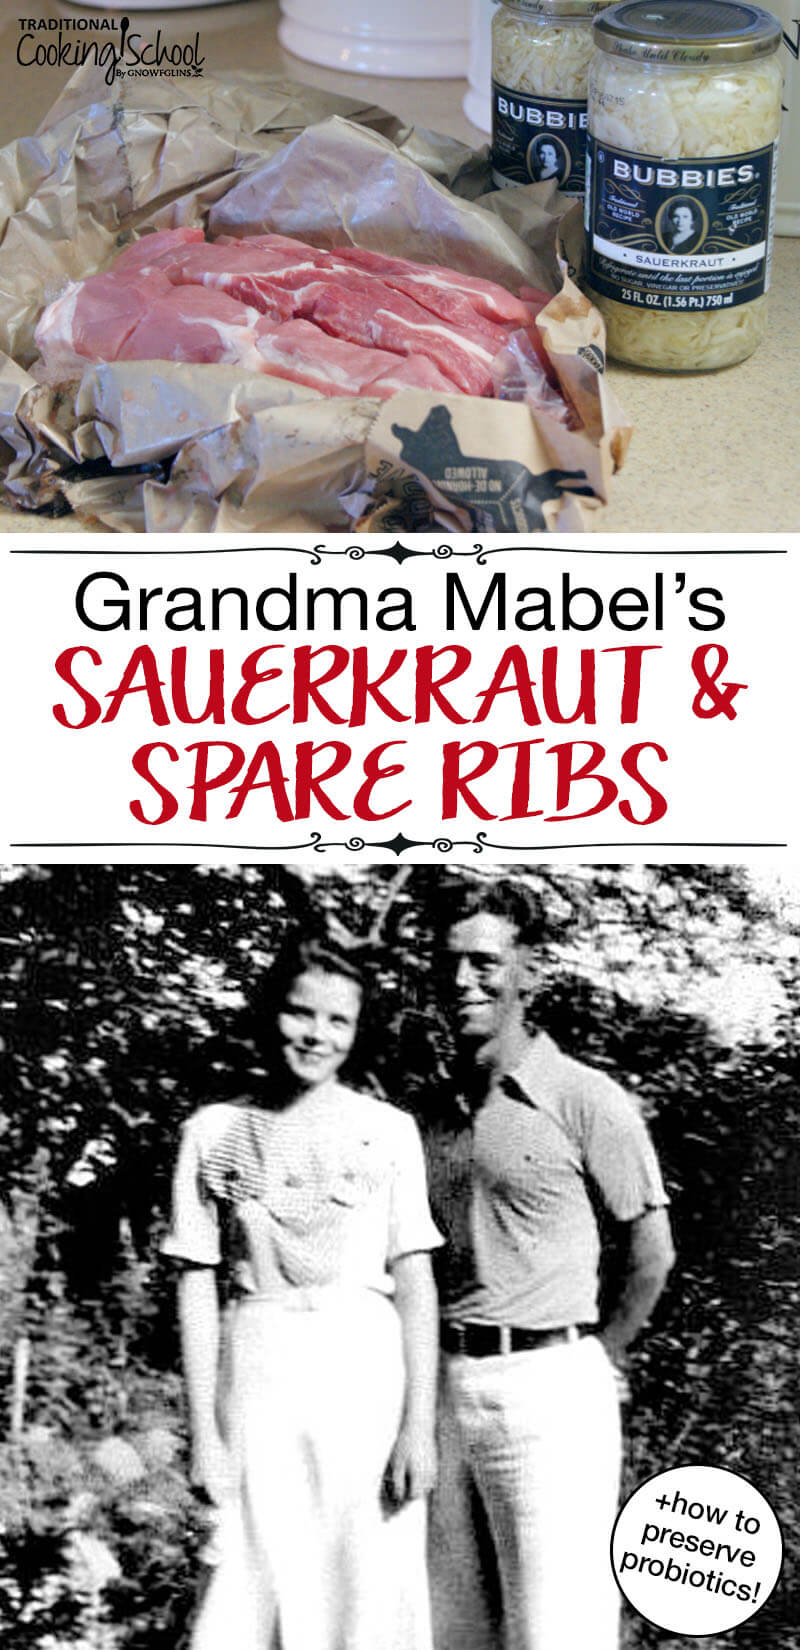 """Pinterest Pin with an image of a pack of spare ribs with jars of bubbie's sauerkraut in the kitchen. Another image of a black and white old photo of a couple. Text overlay says, """"Grandma Mabel's Sauerkraut & Spare Ribs - +how to preserve probiotics"""""""